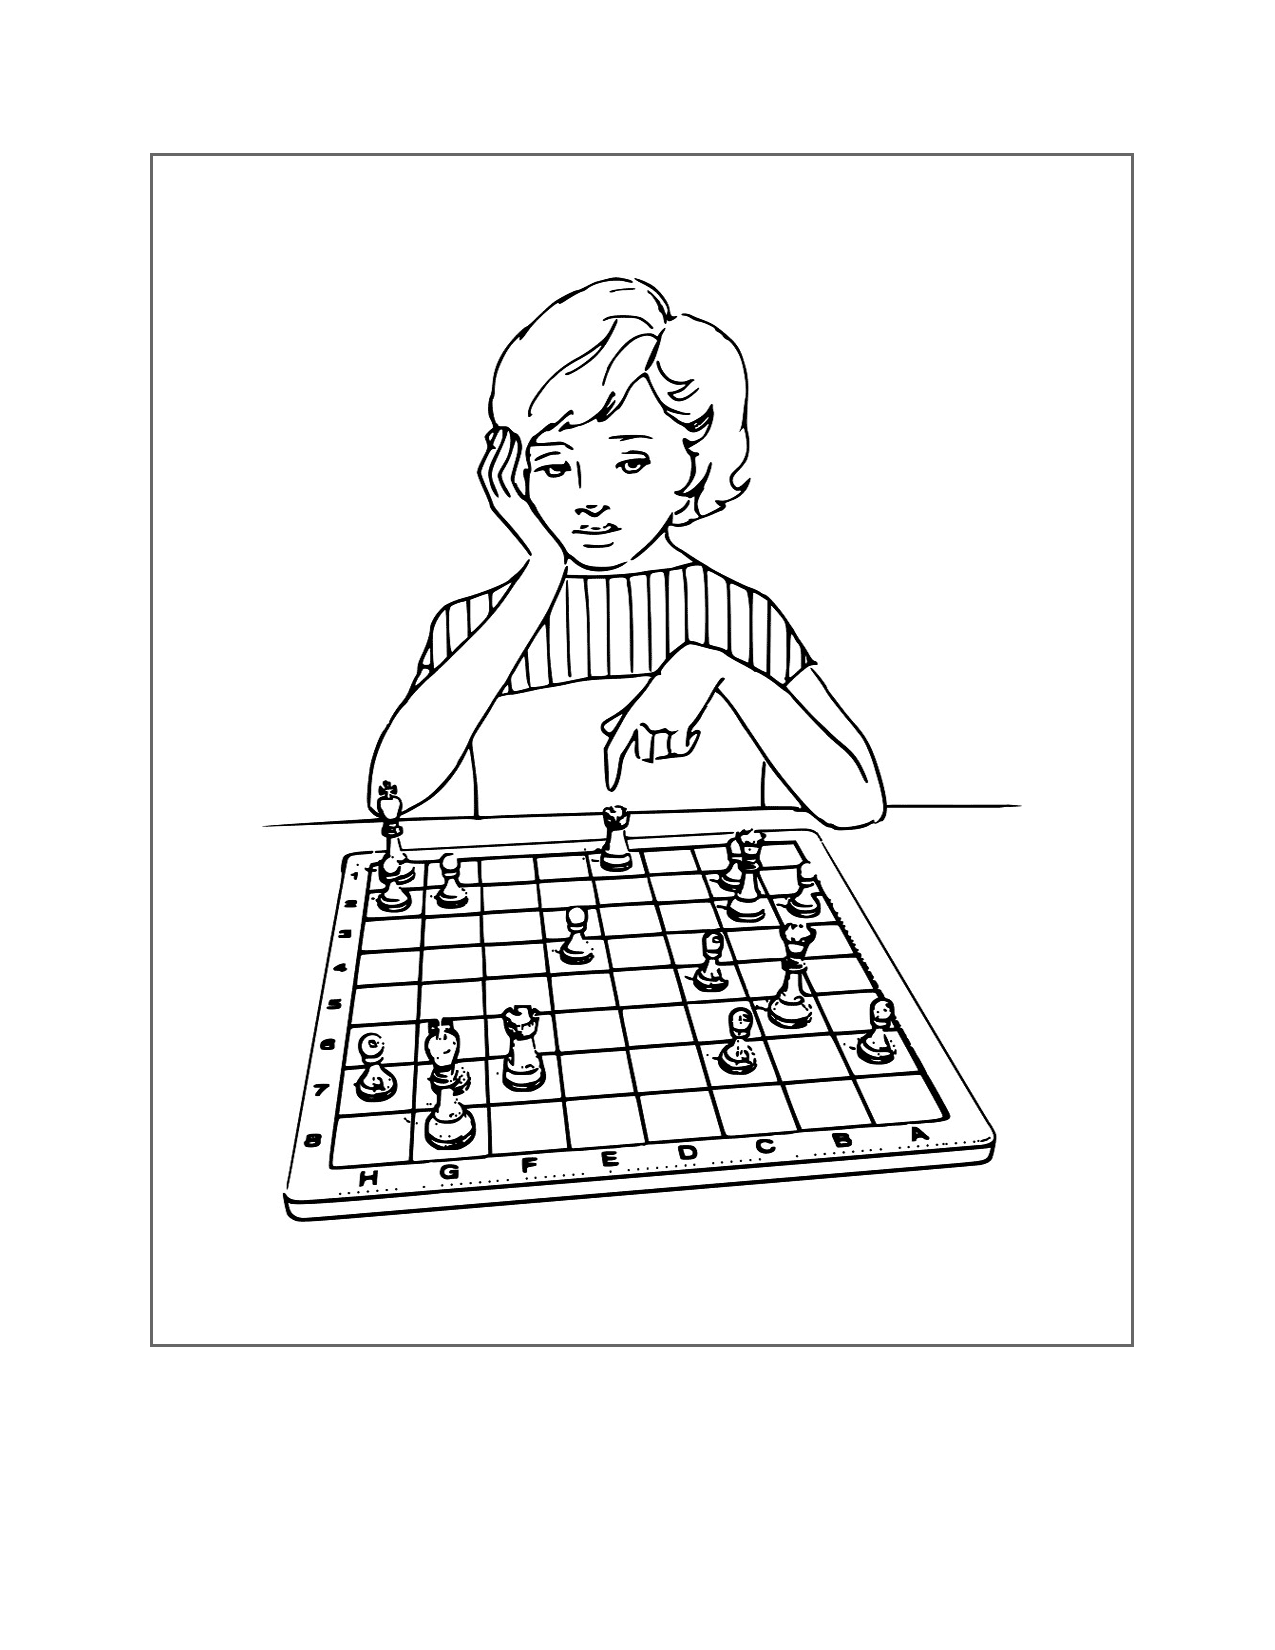 Playing Chess Coloring Page